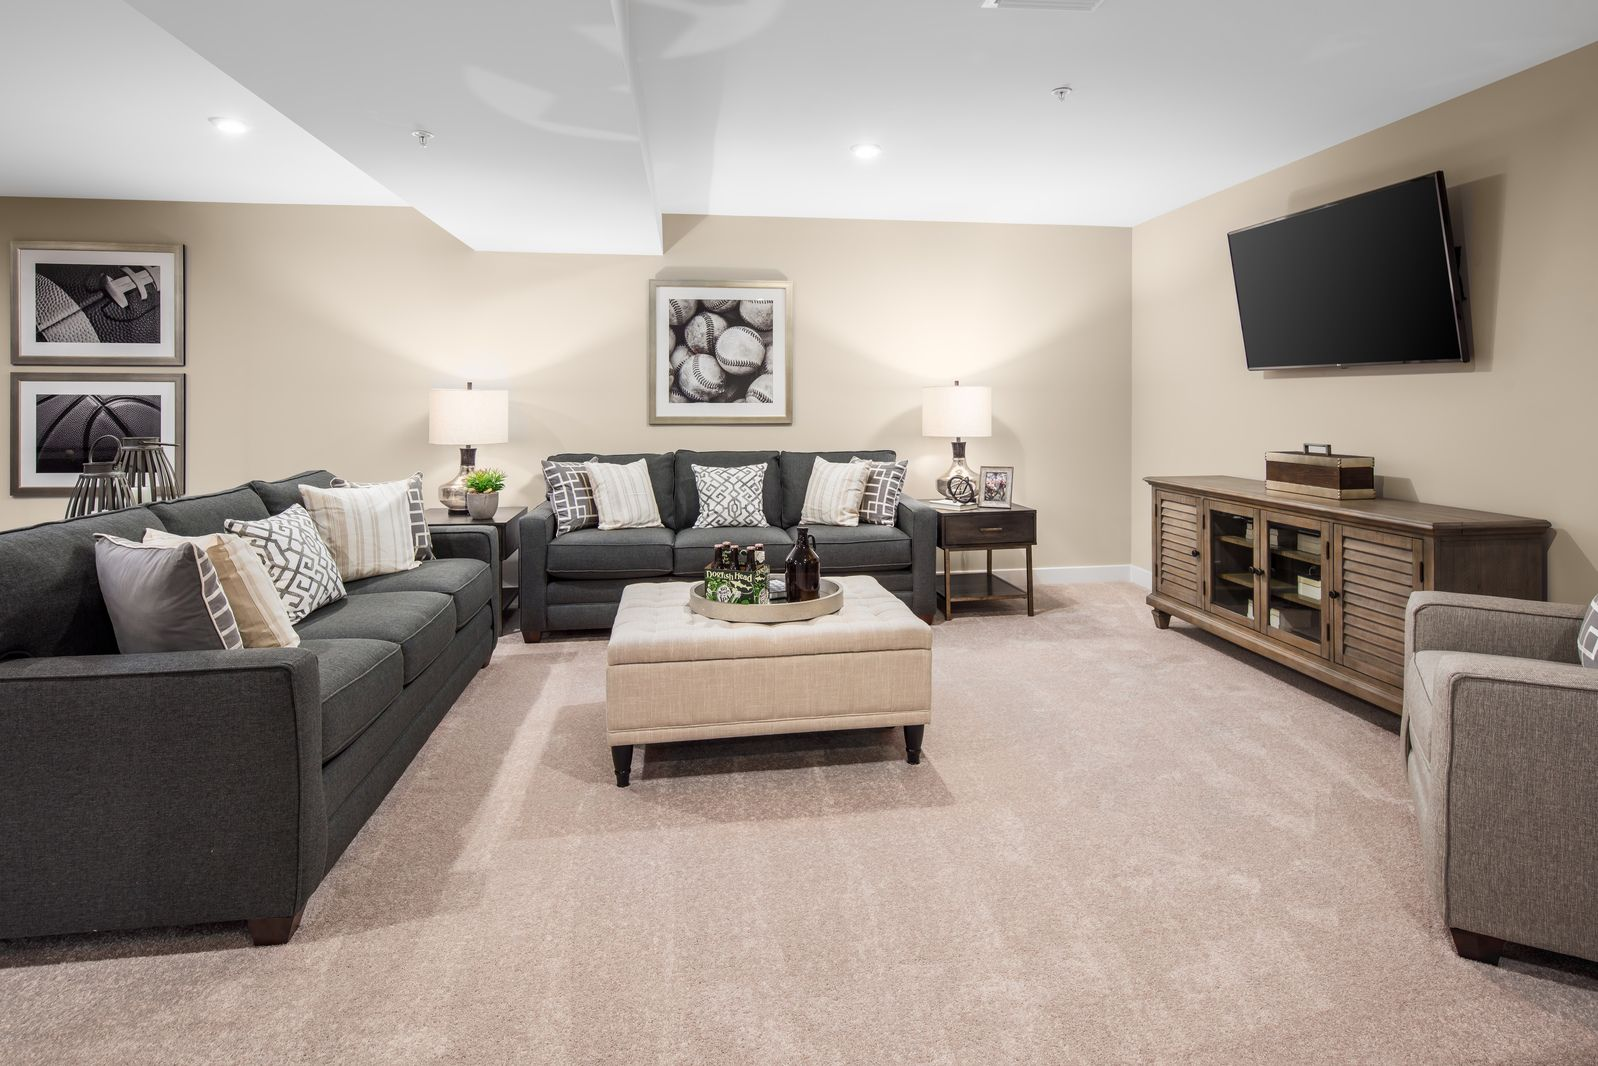 Living Area featured in the Lehigh By Ryan Homes in York, PA